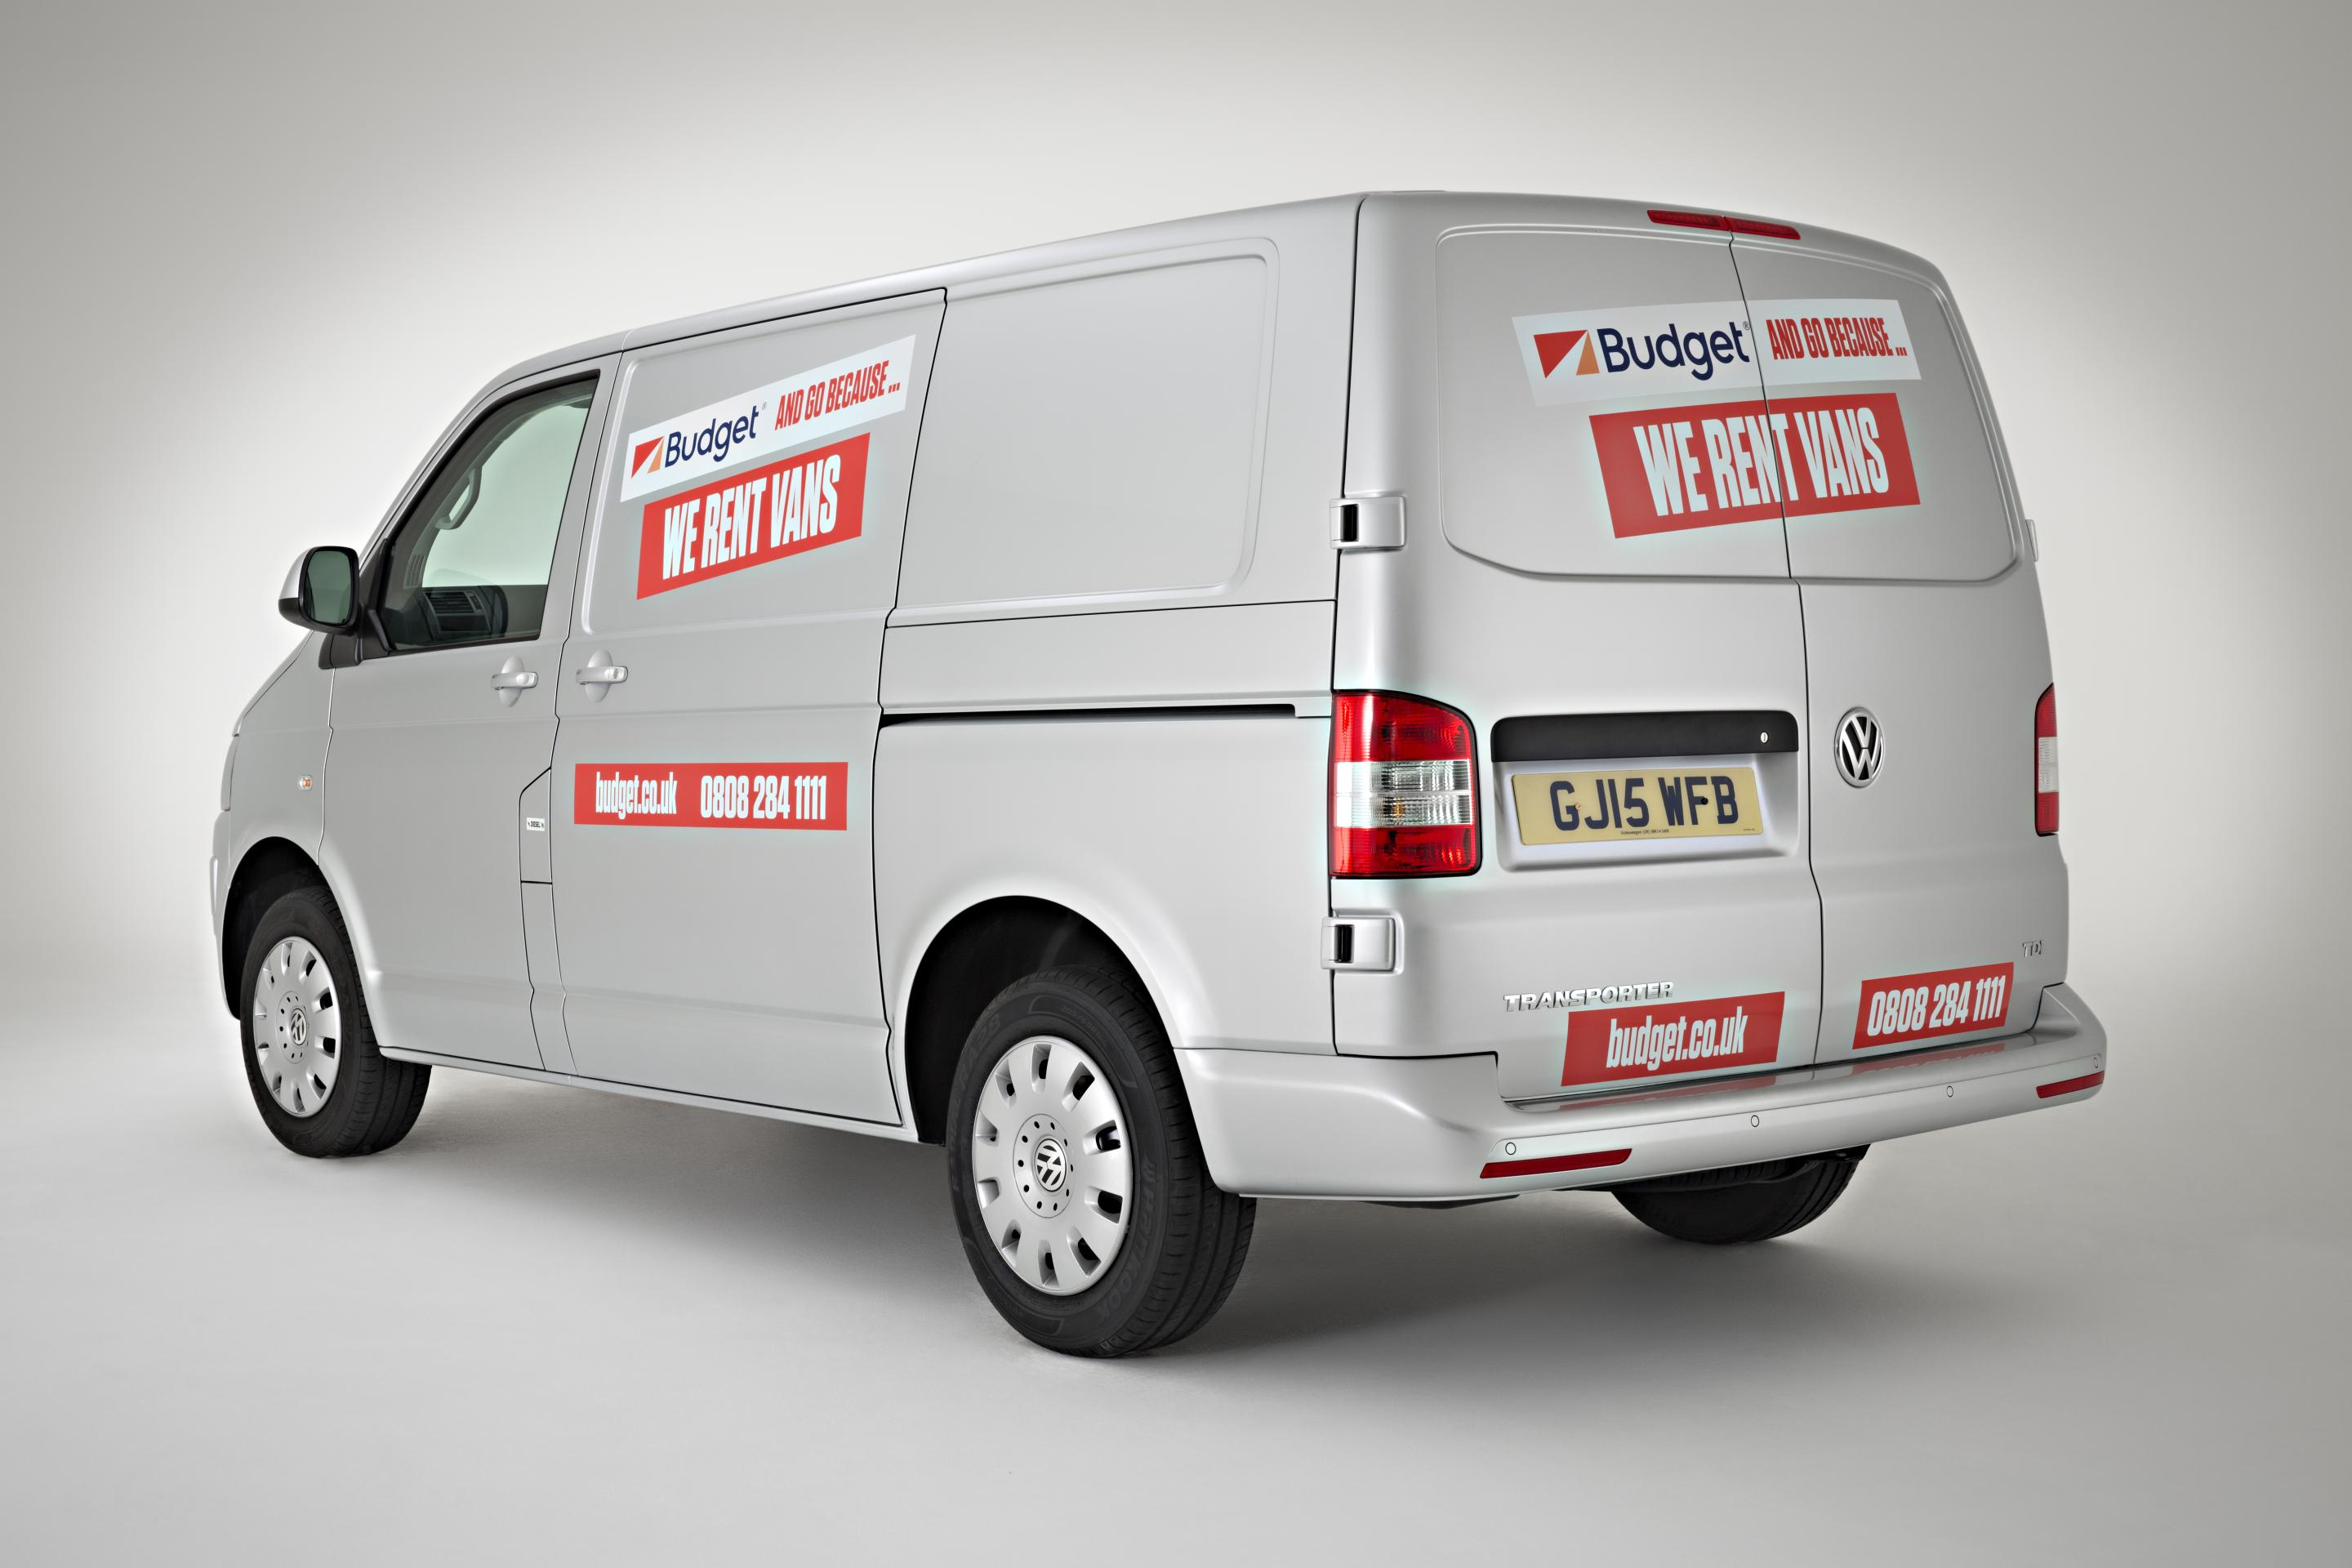 eb80373a44 VW vans are the choice of Budget van rental - CommercialVehicle.com